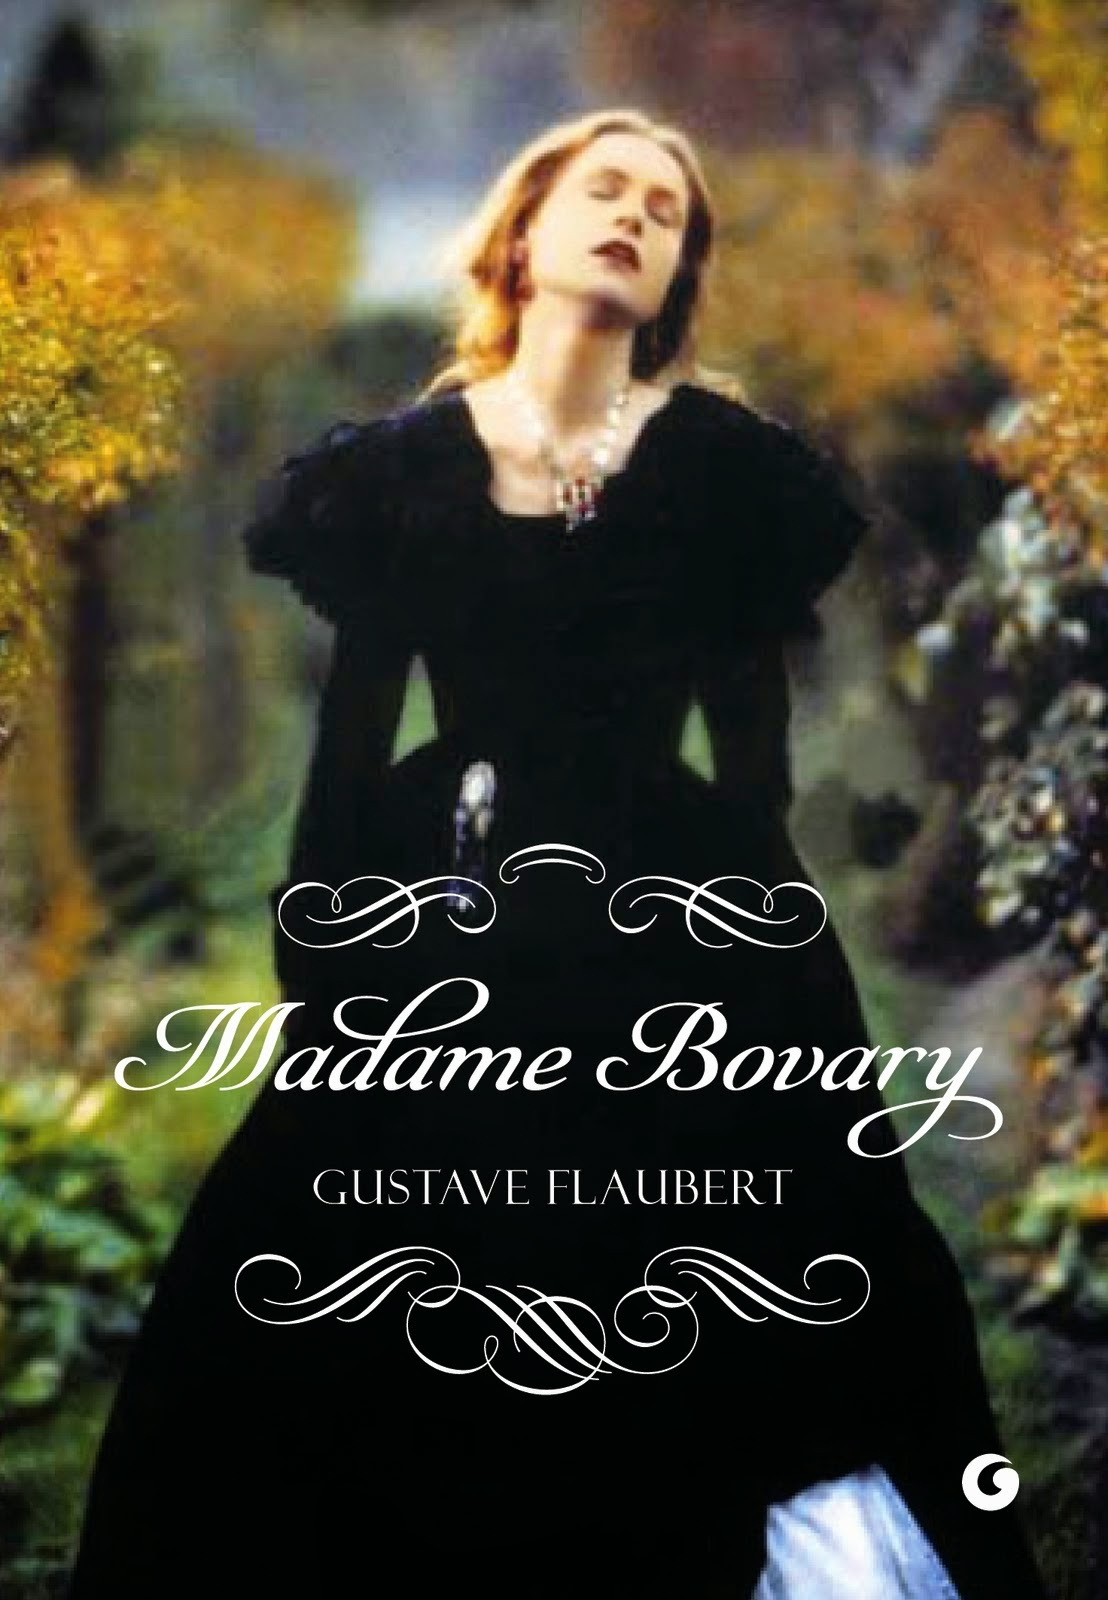 the characterization of emma bovary in madame bovary by gustave flaubert Free essay: gustave flaubert of madame bovary and isabel allende of the house of the spirits both manipulate elements of genre, dialogue, and style in.